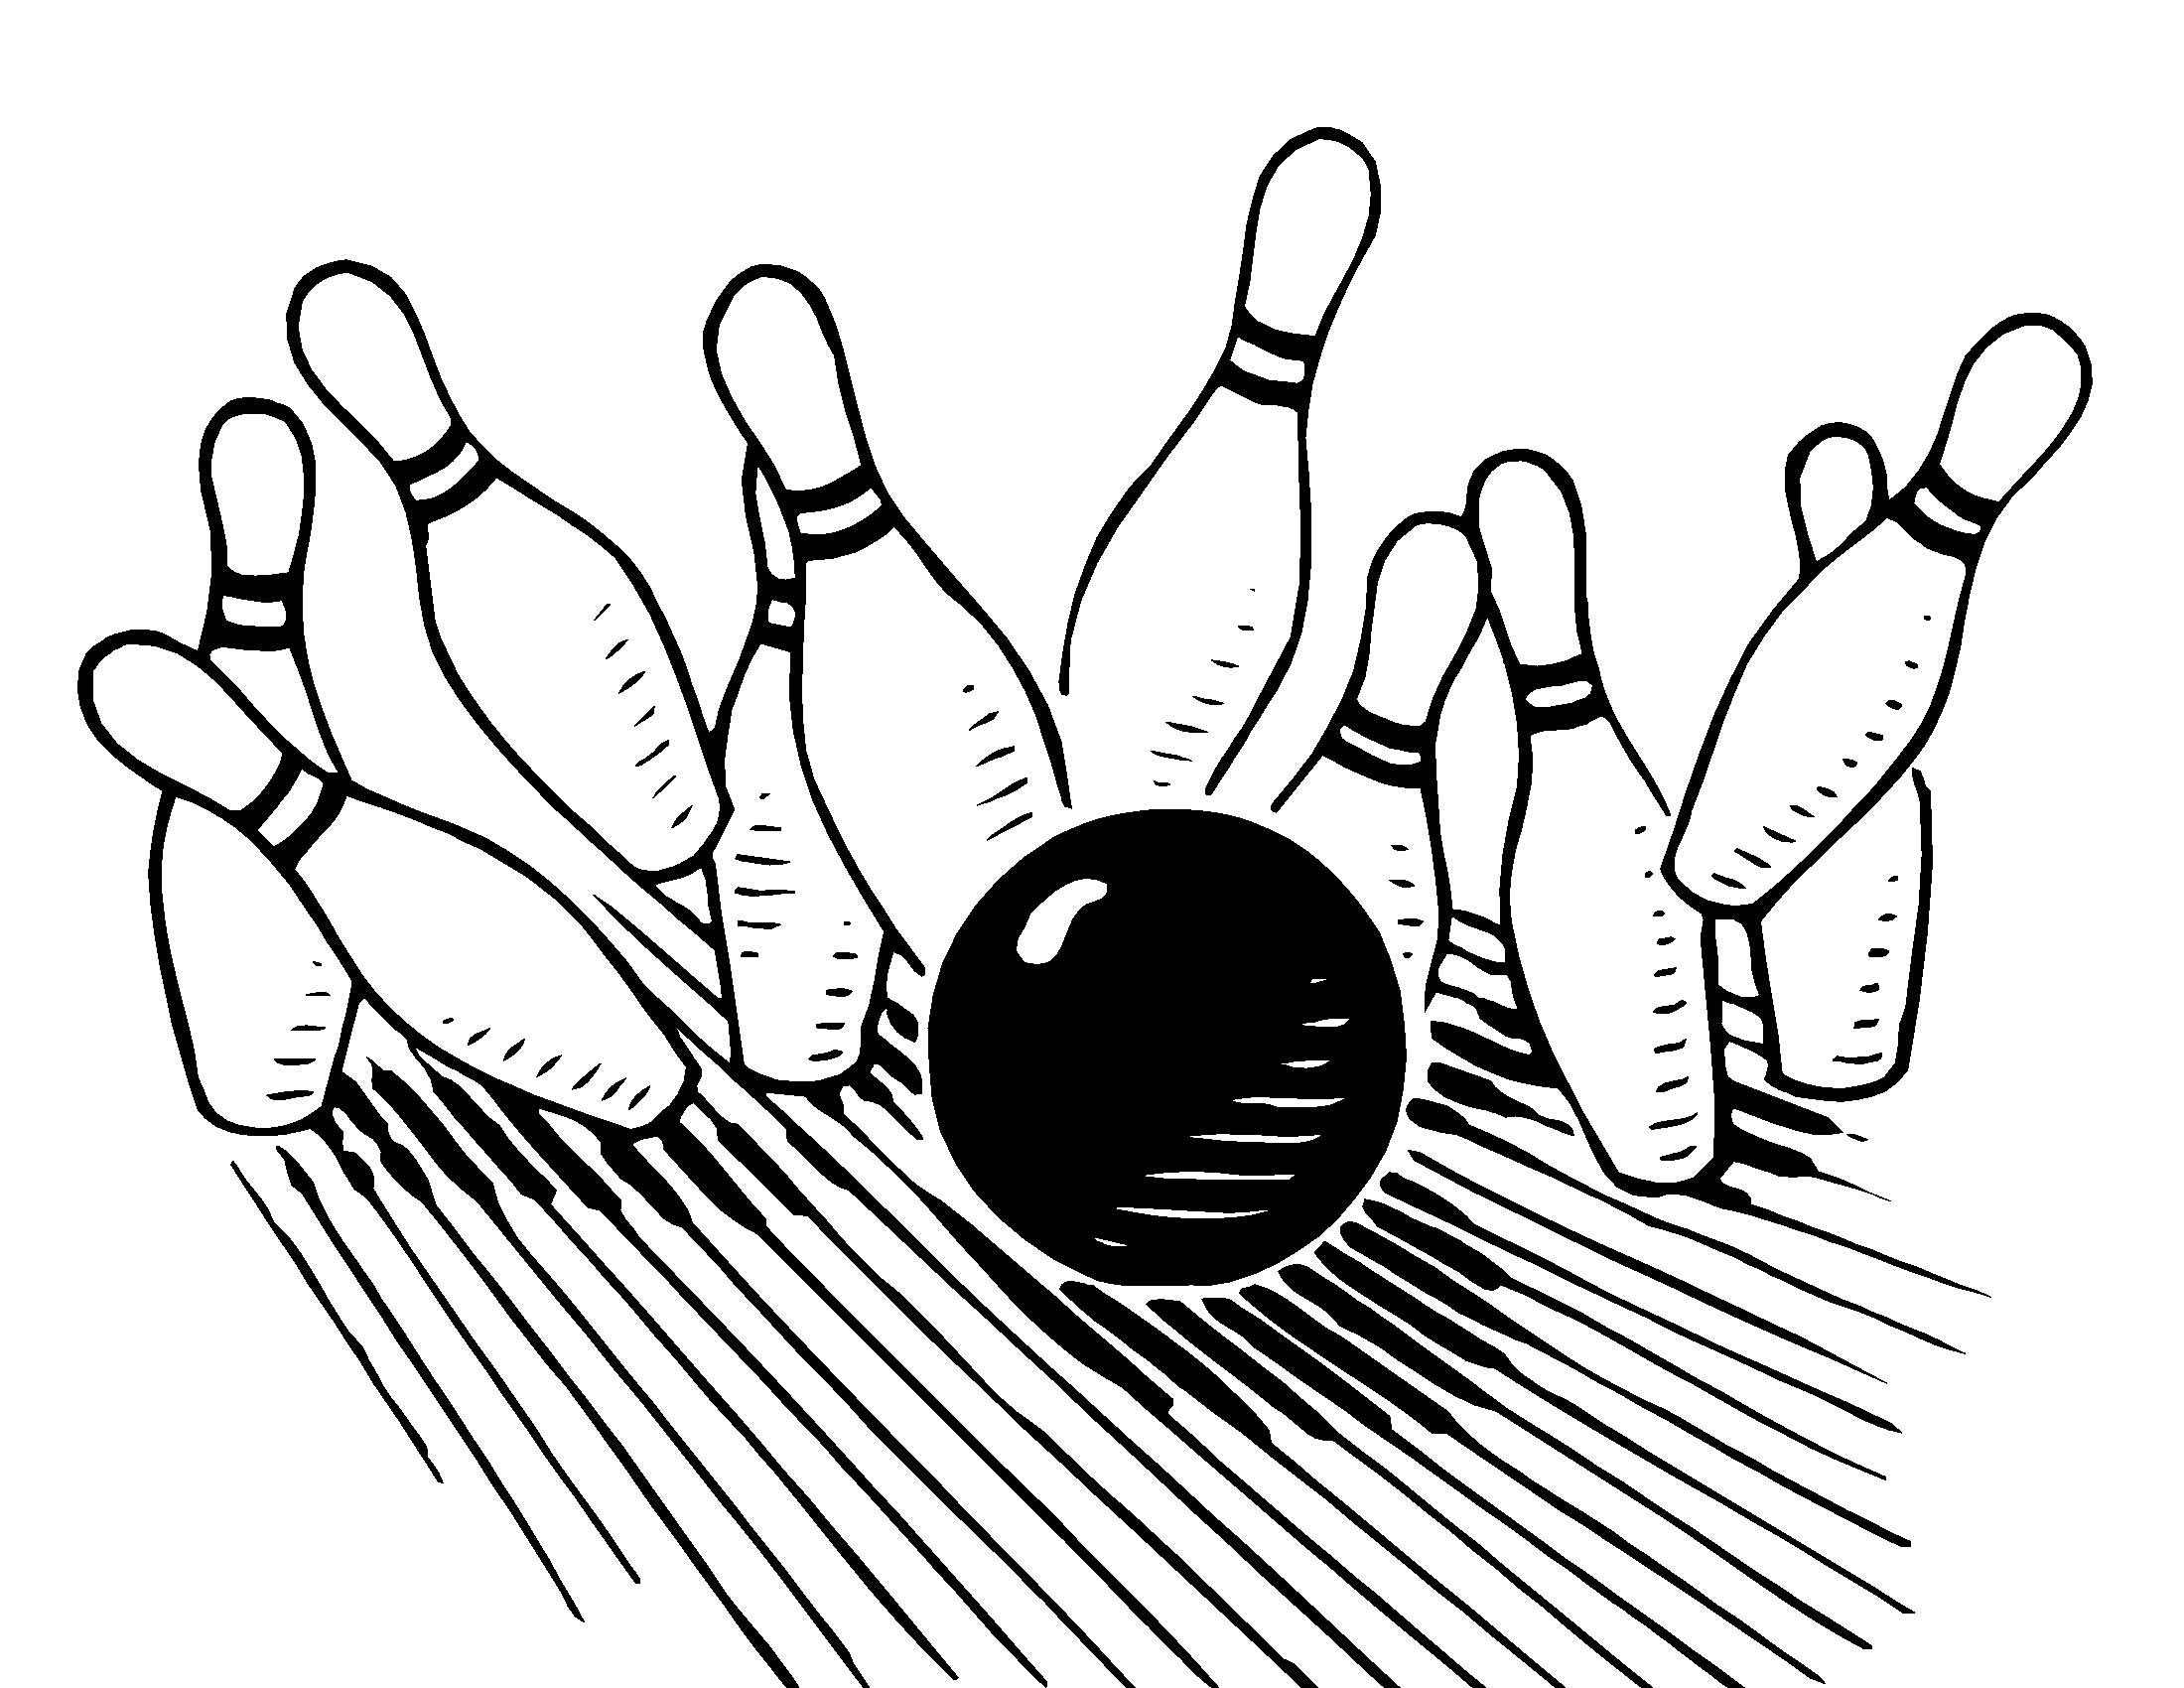 Pictures Of Bowling Pins And Balls